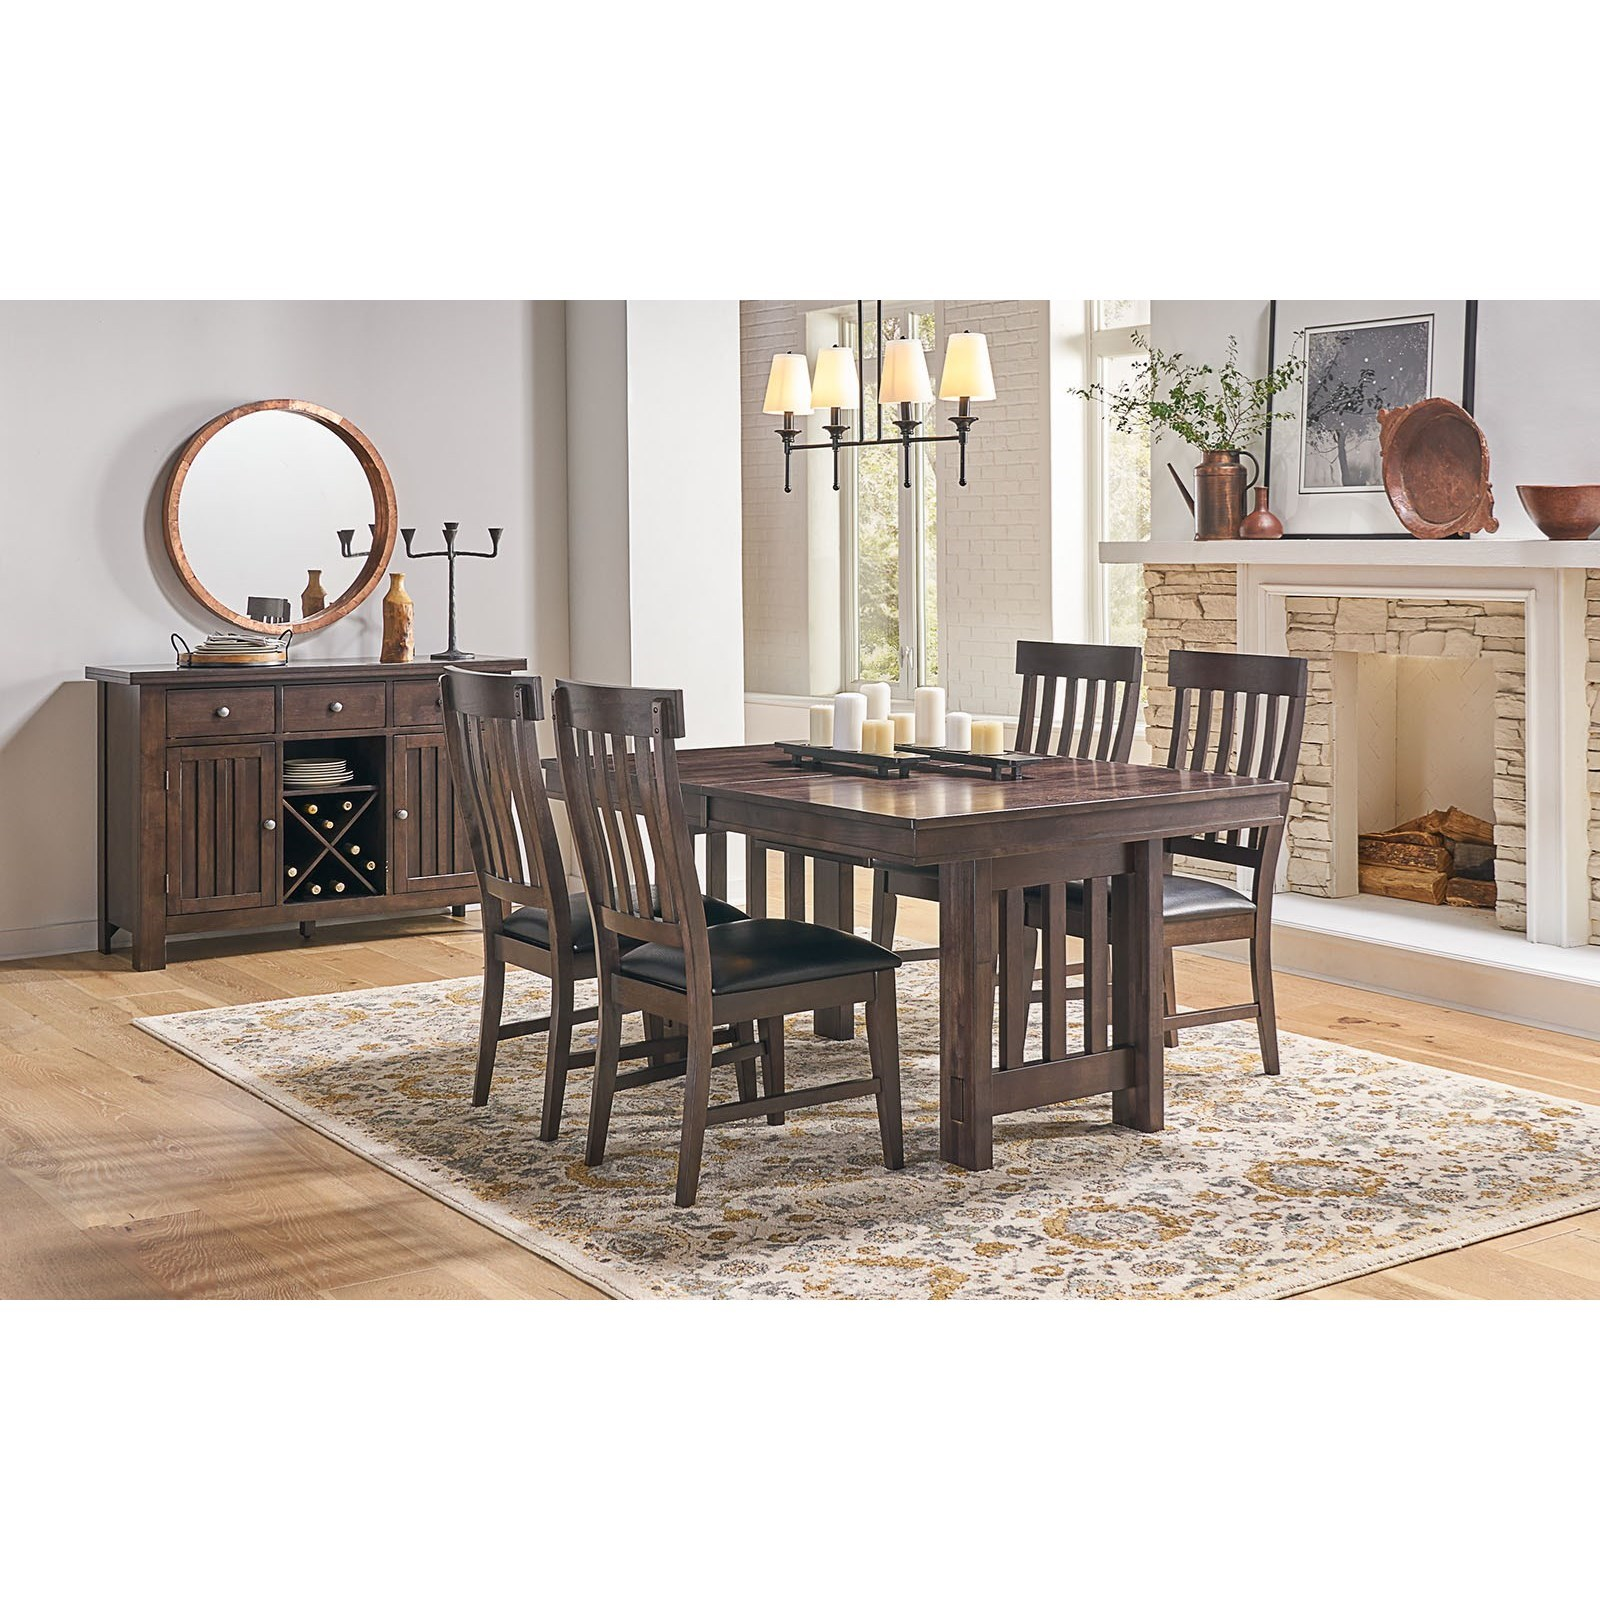 Bremerton 5-Piece Table and Chair Set by AAmerica at Zak's Home